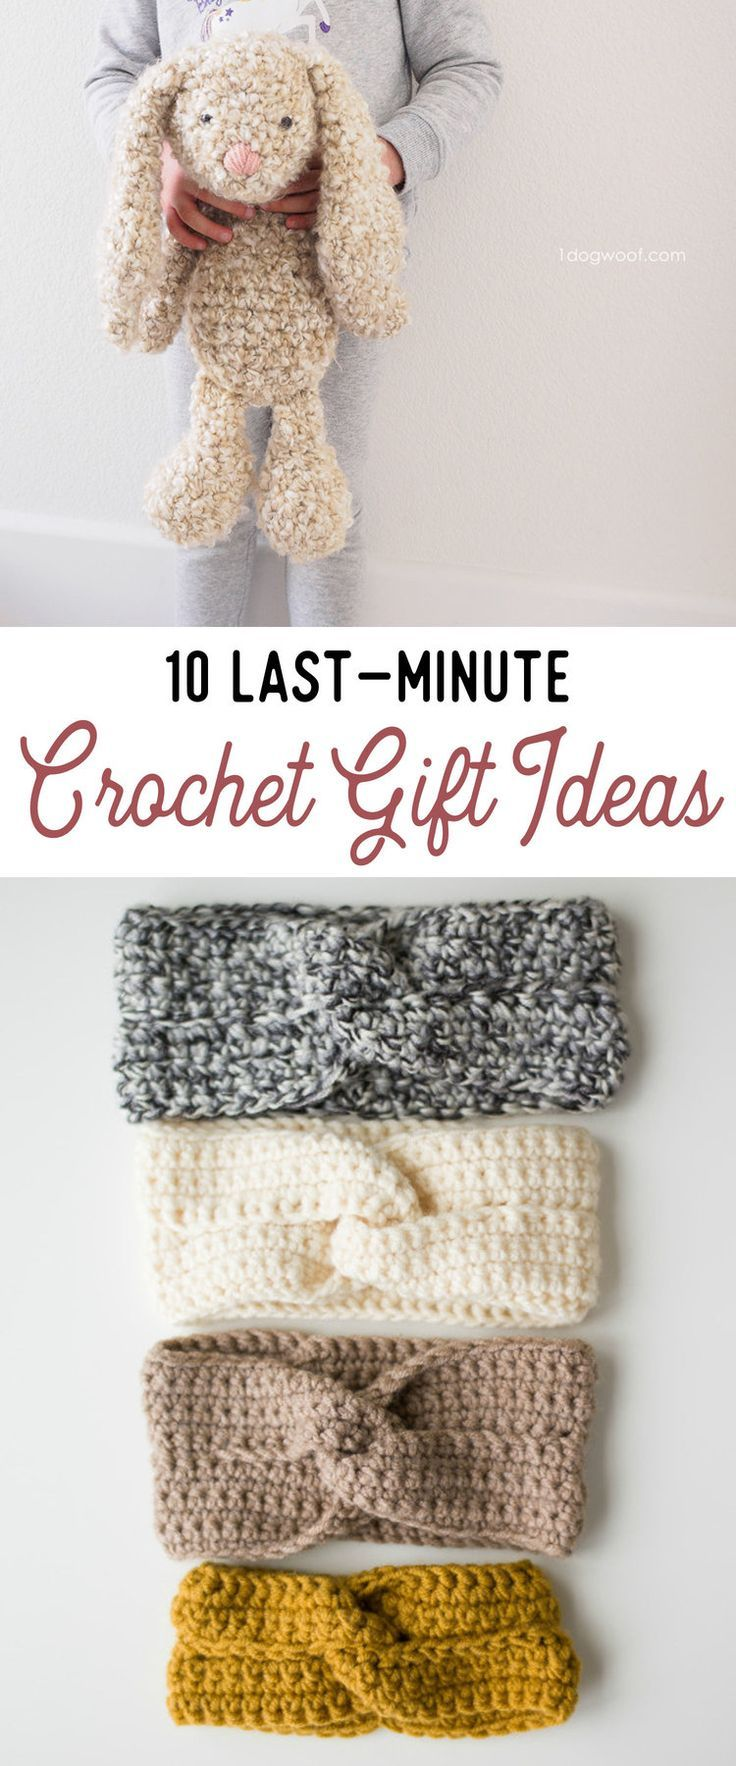 Ten Last-Minute Crochet Gift Ideas (All Free Patterns!) | Gorros ...